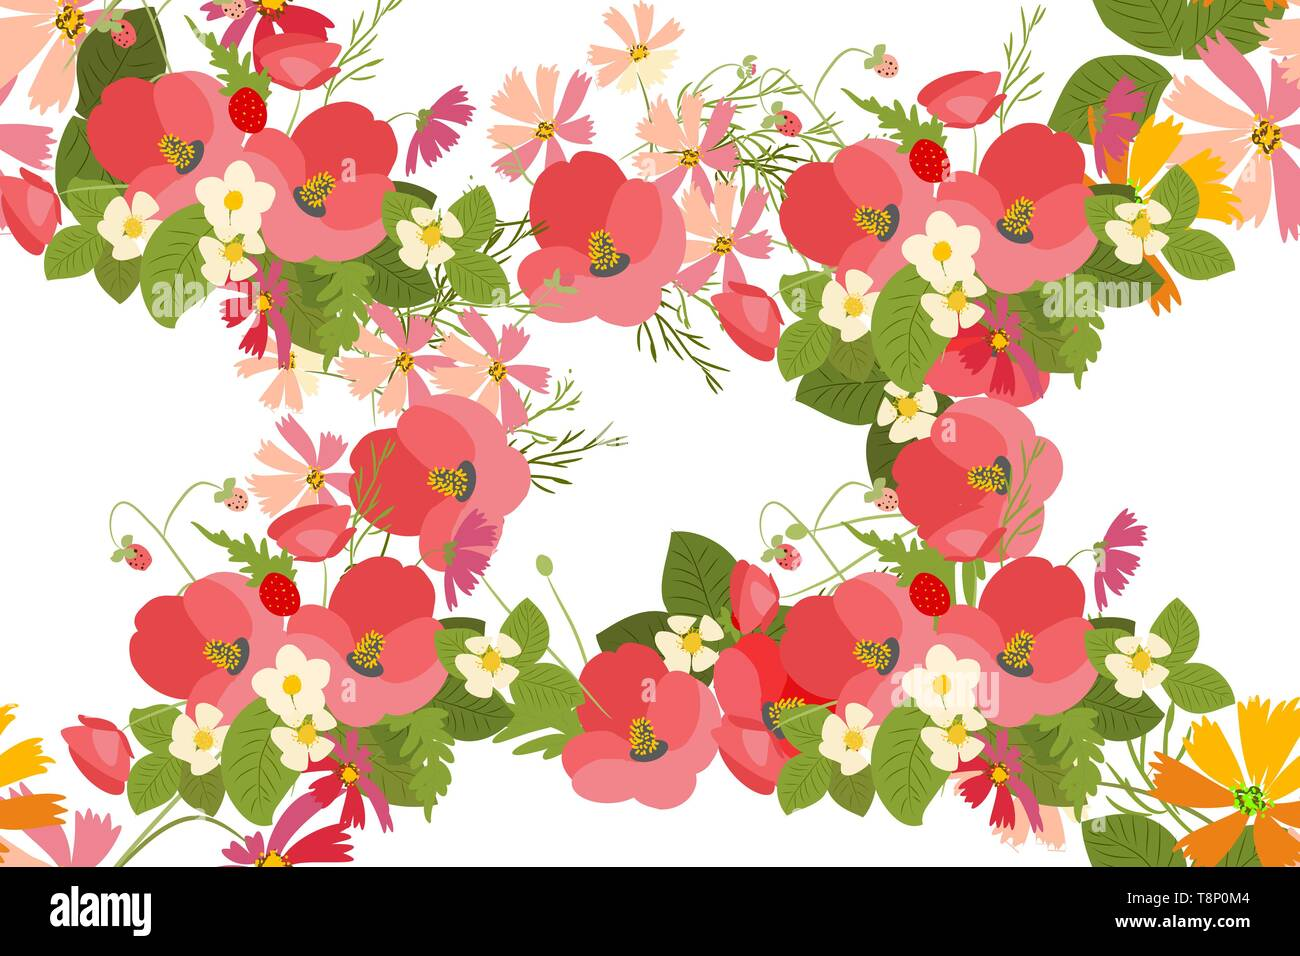 Floral background poppy and cosmos strawberries vector illustration  - Stock Vector